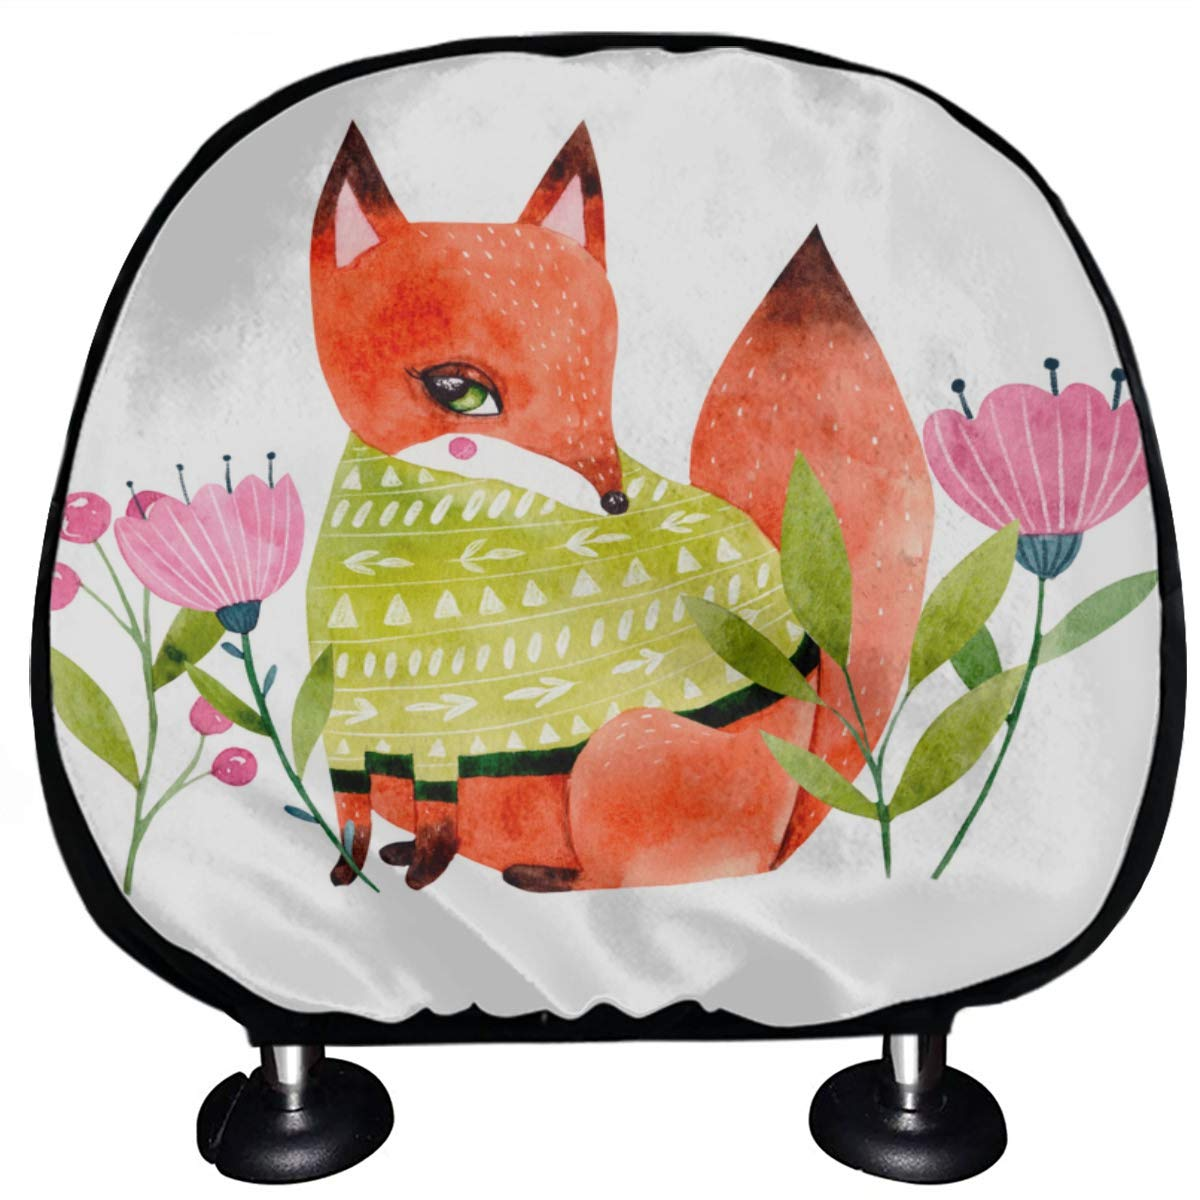 Removable Headrest Seat Covers Cute Fox and Fragrant Flowers Car Seat Headrest Covers Set of 2 Universal Fit for Cars Vans Trucks Headrest Cushion Fashion Auto Interior Accessories